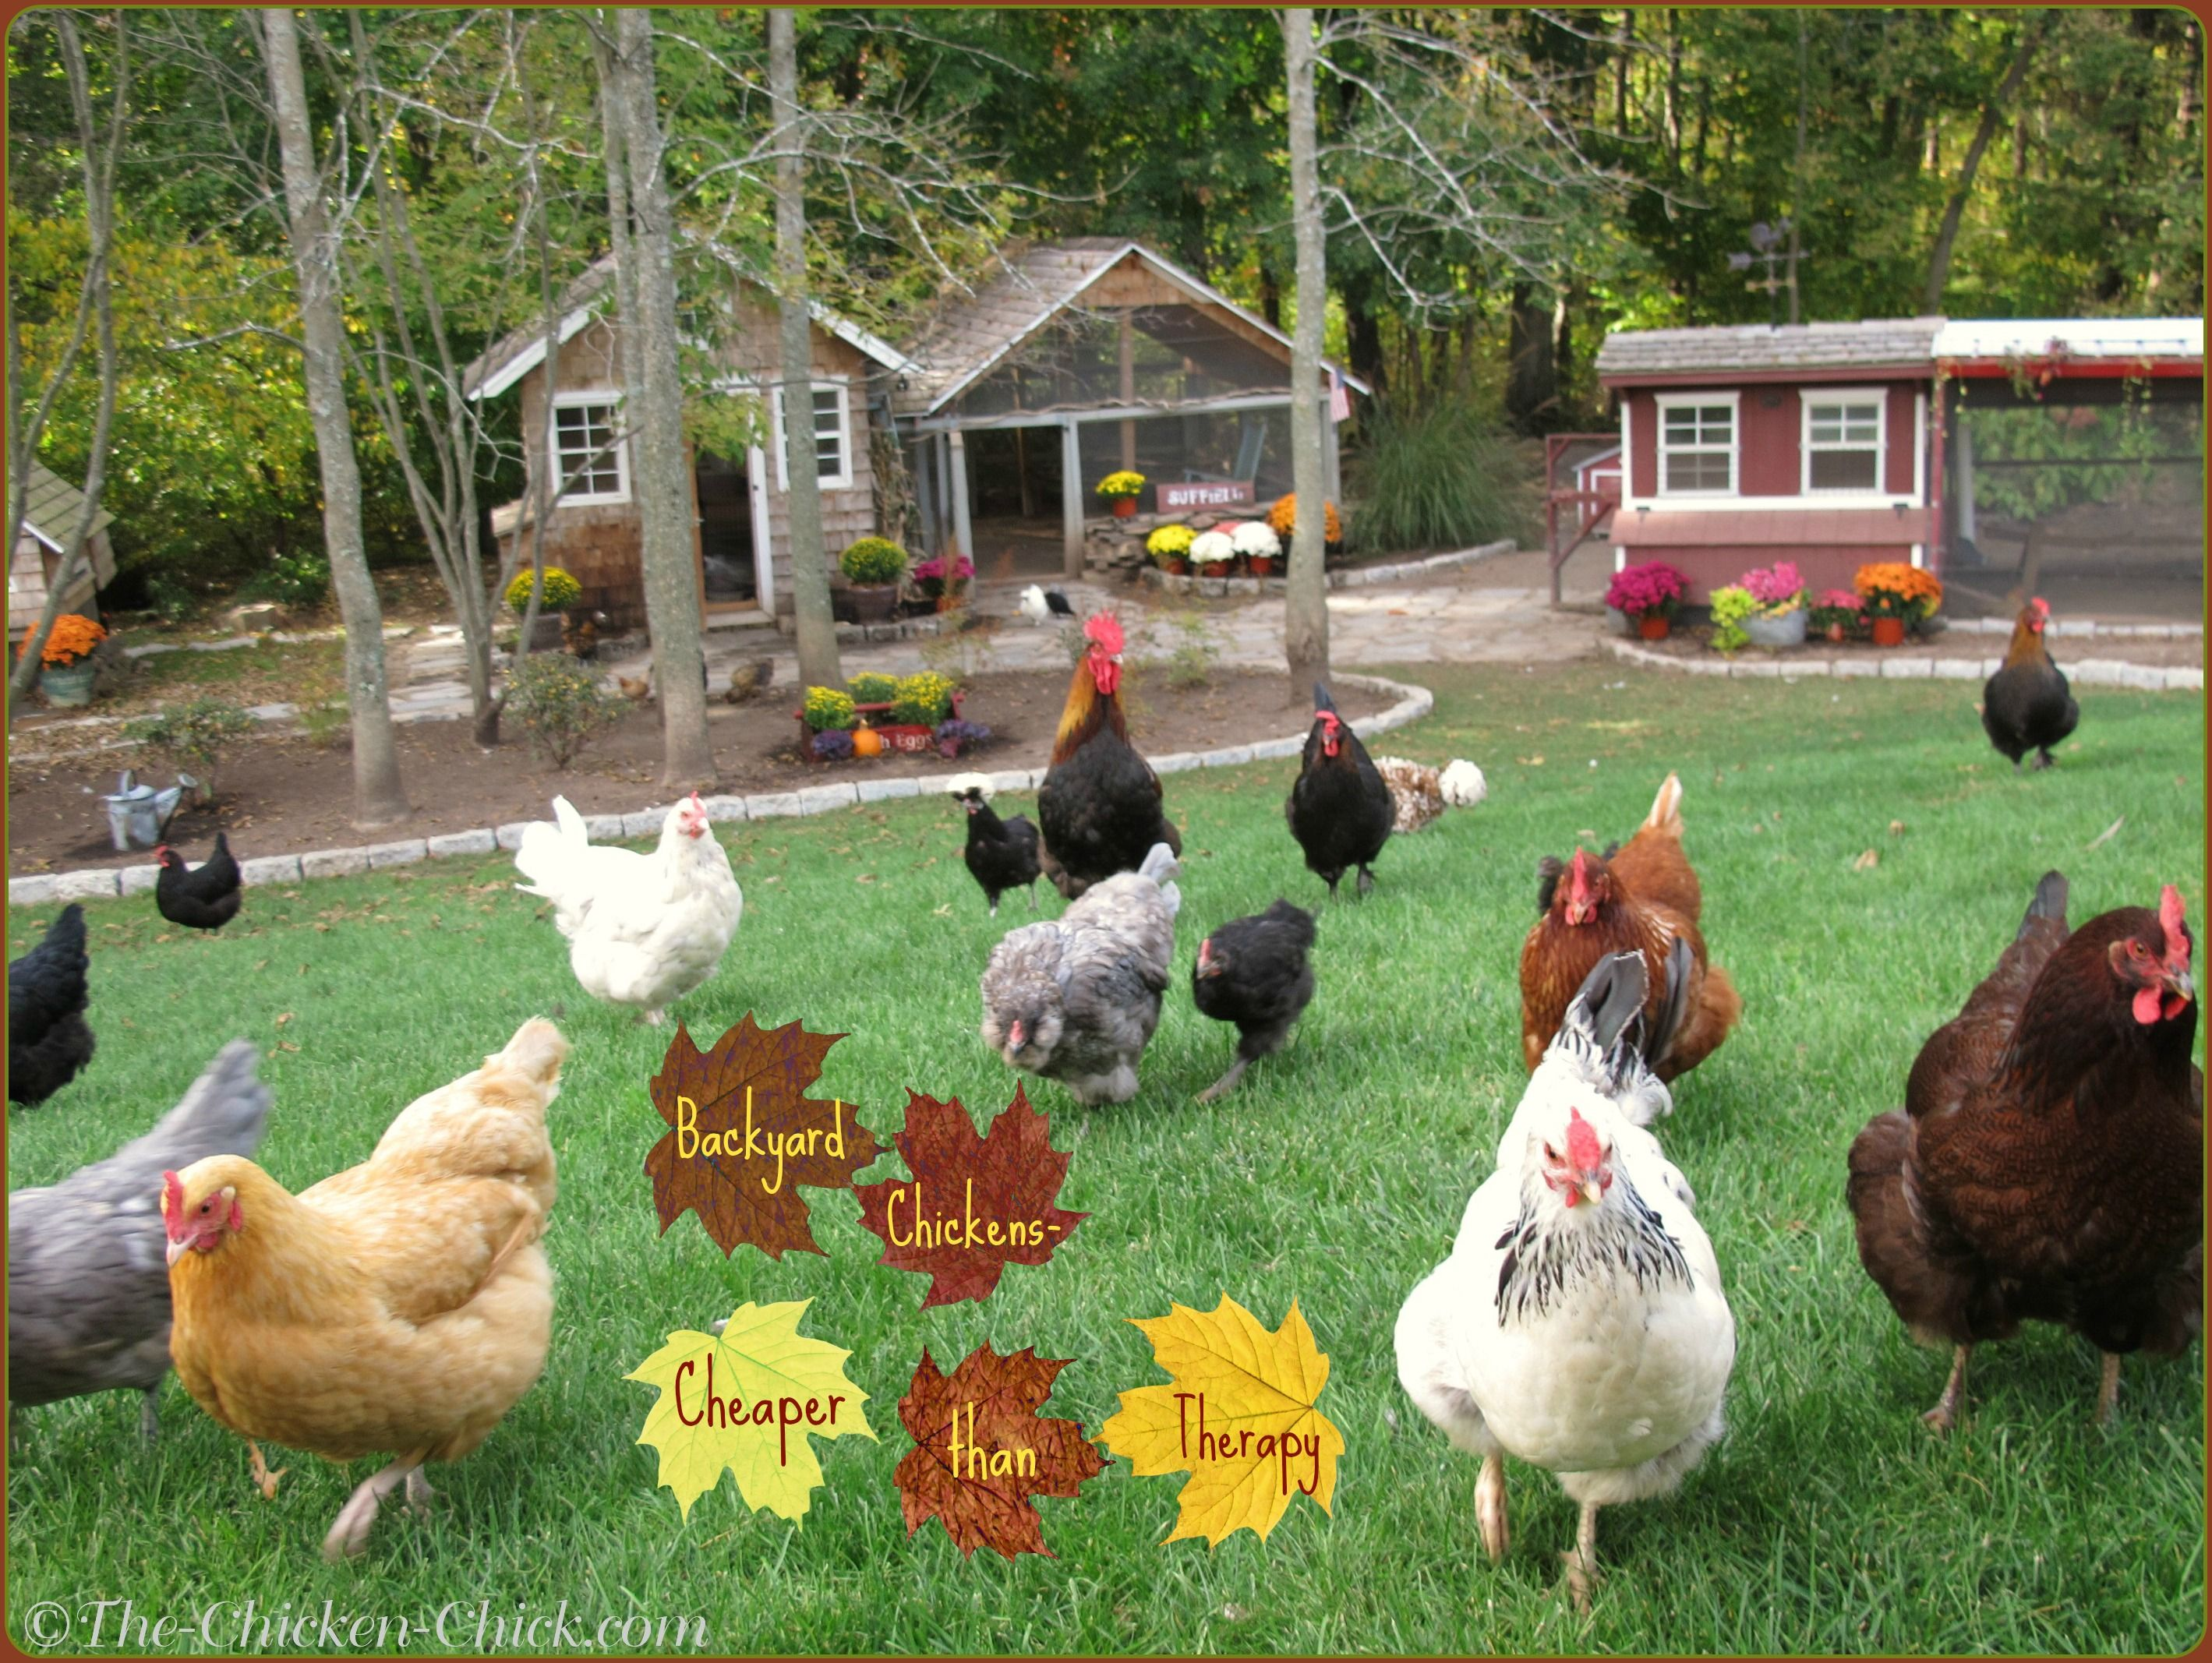 Backyard Chickens- Cheaper than therapy.   Chickens ...